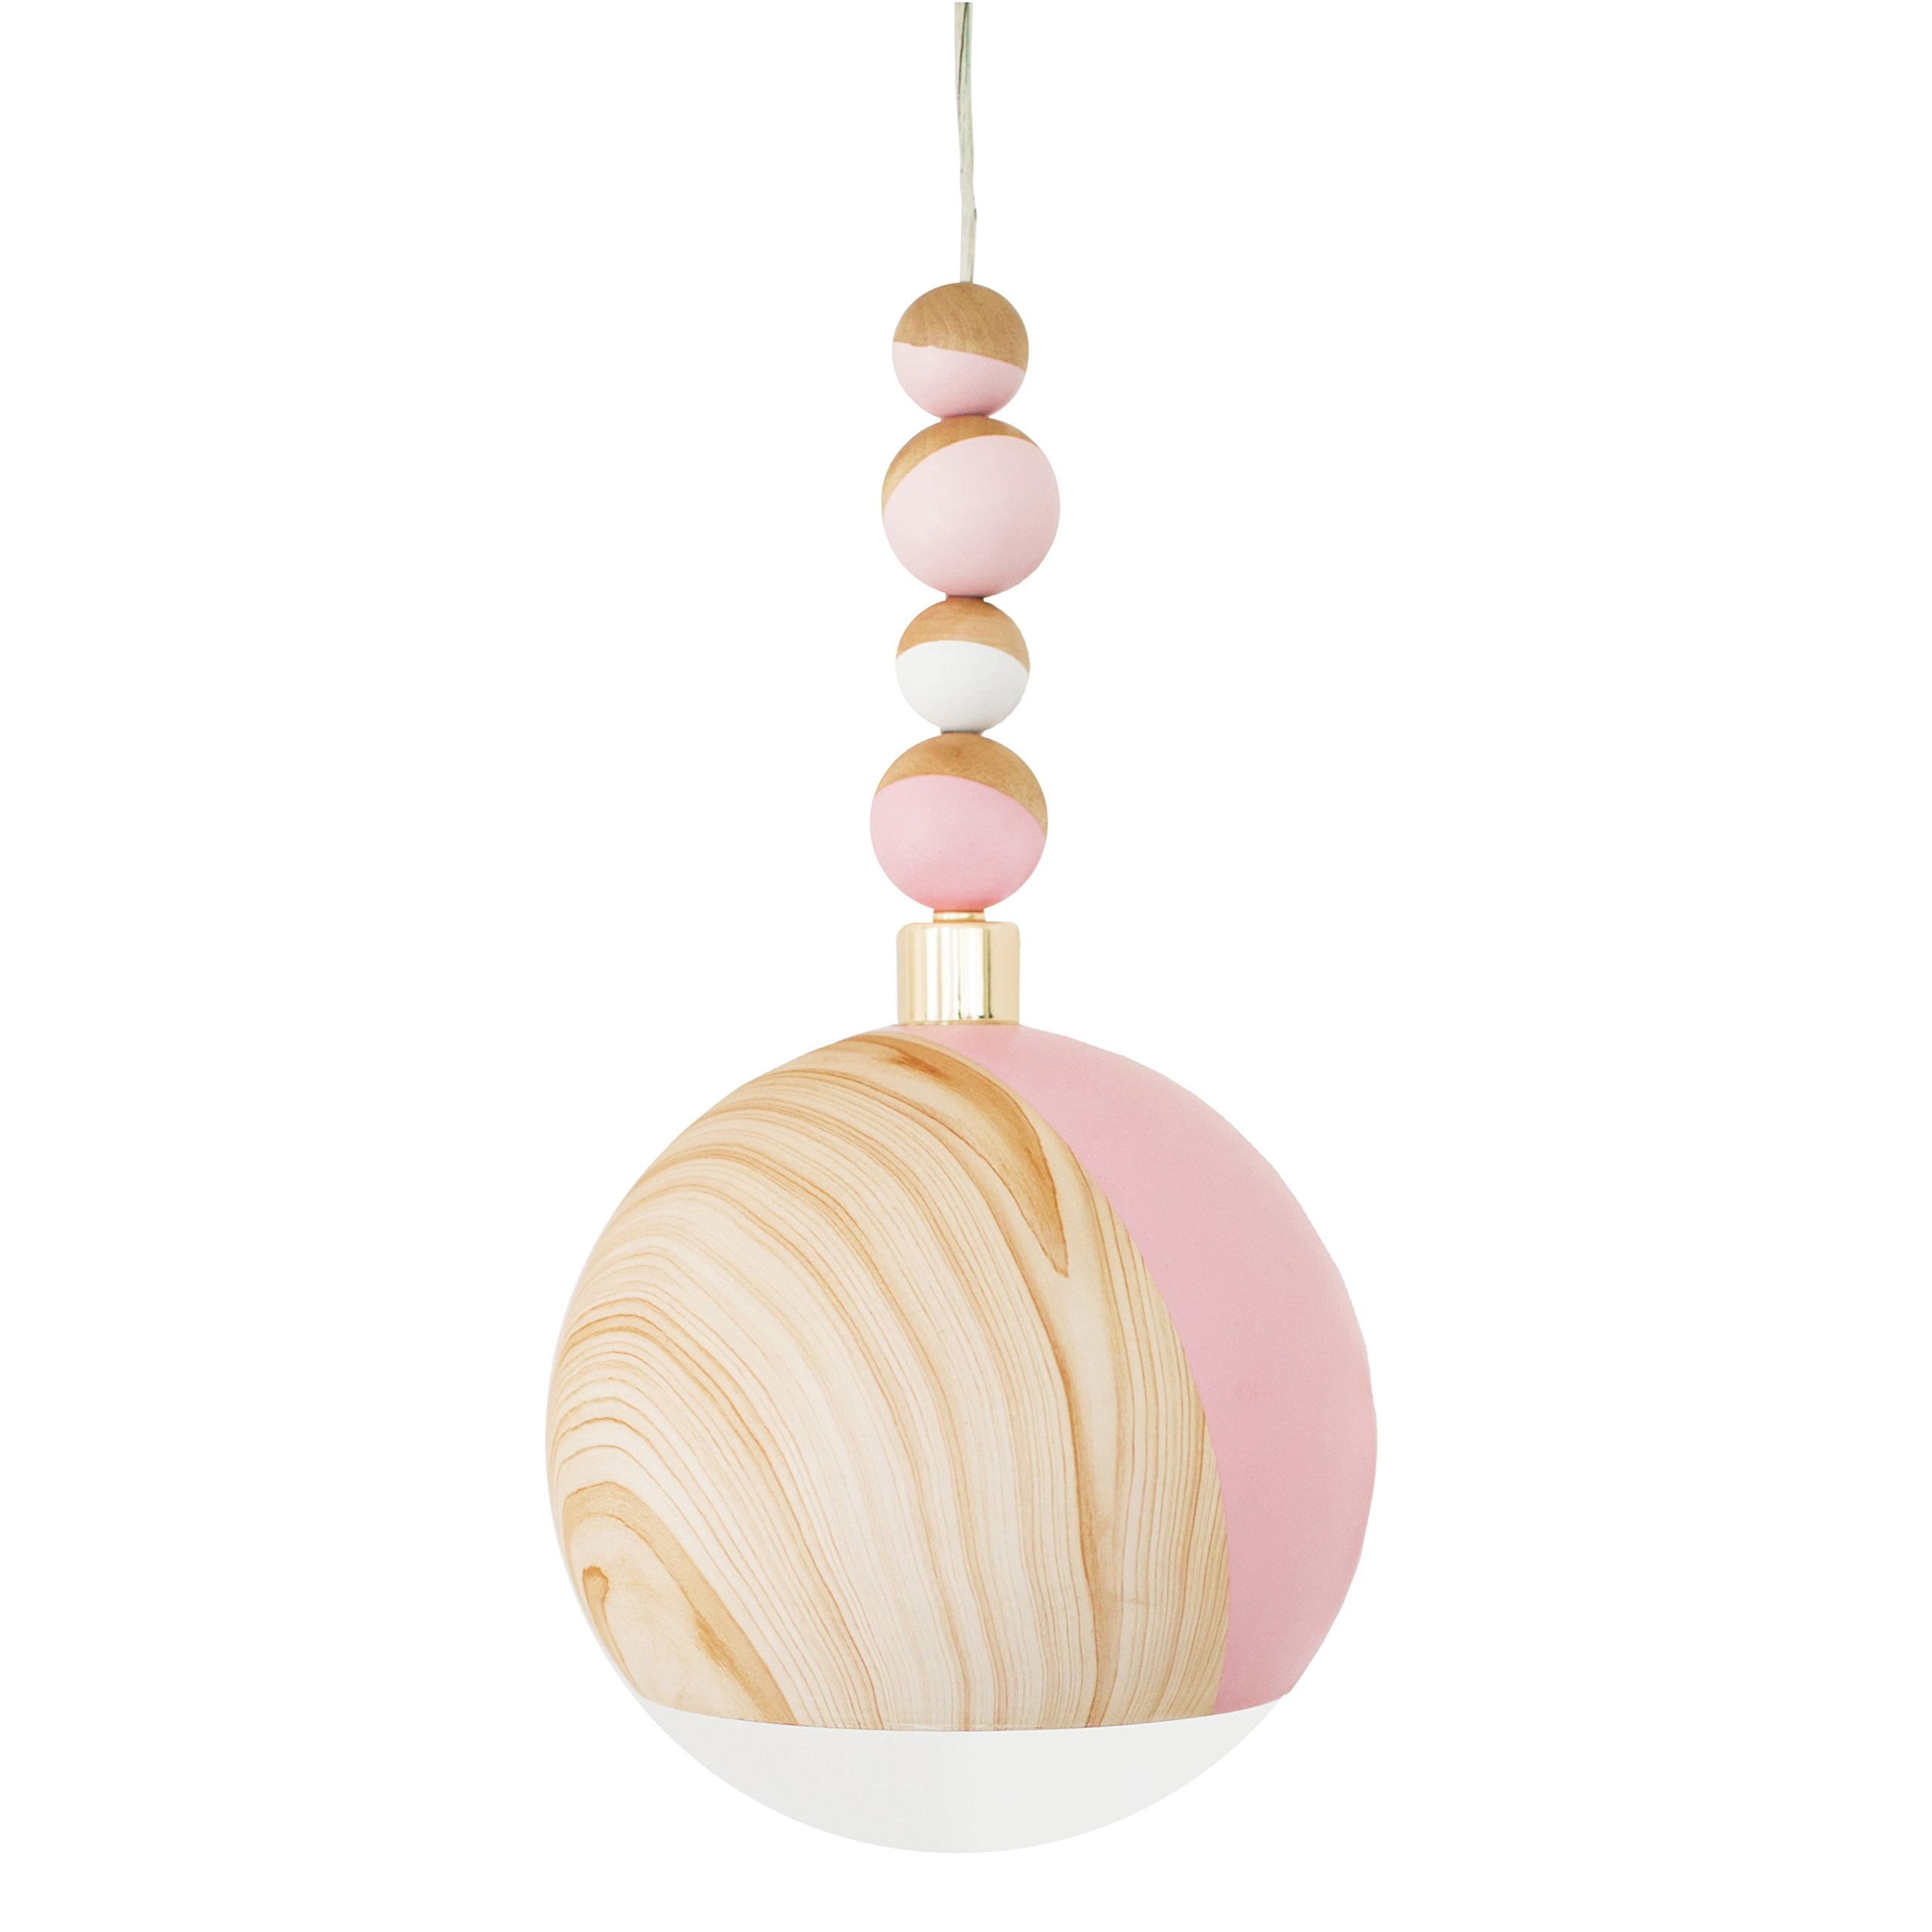 Petunia Pickle Bottom Dreaming in Dax Hanging Ceiling Pendant Light, Pink/White/Brown